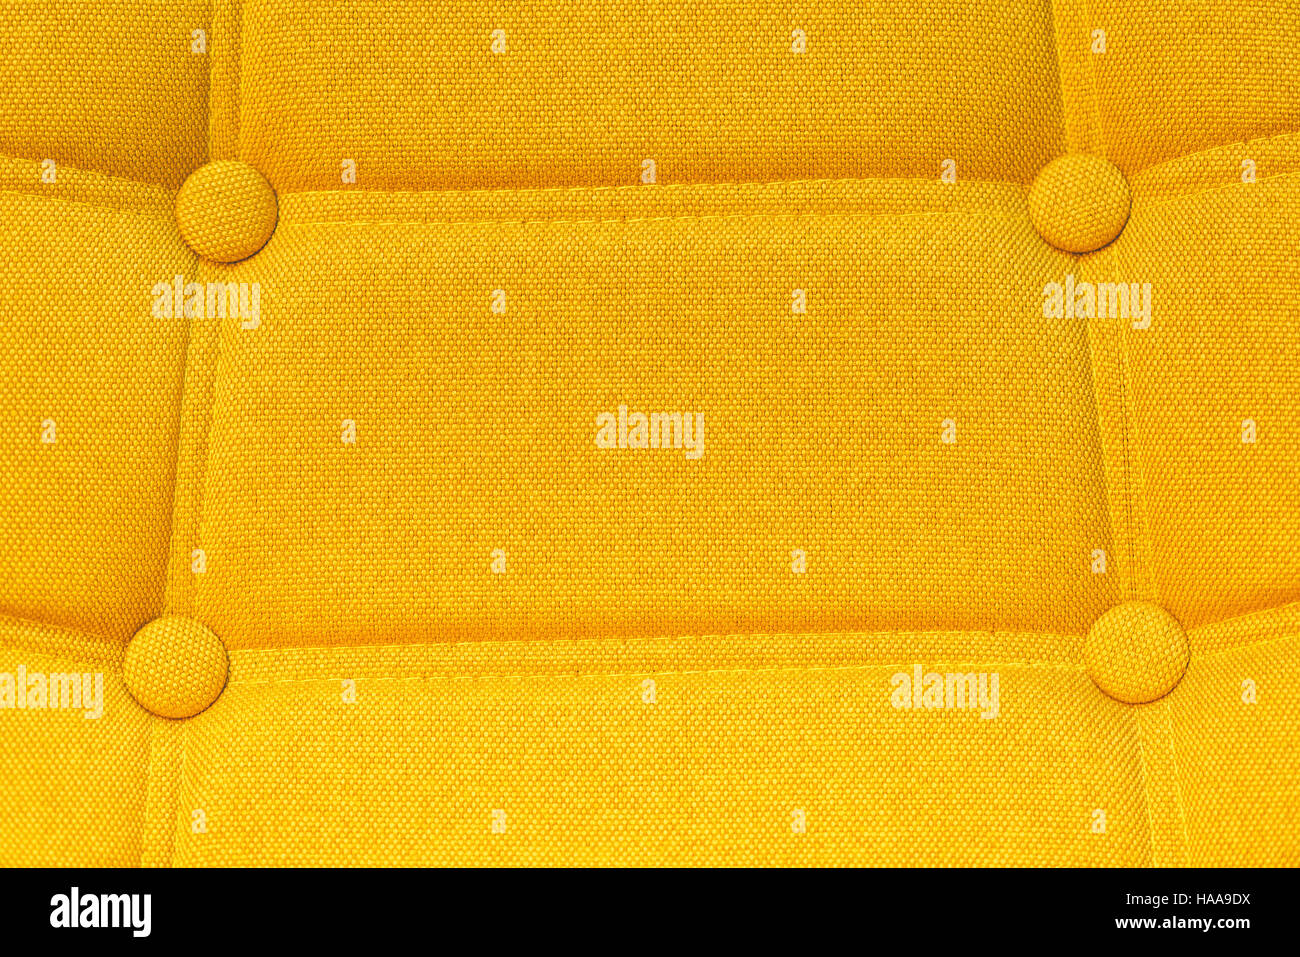 Buttoned chair back support detail, yellow fiber material texture - Stock Image